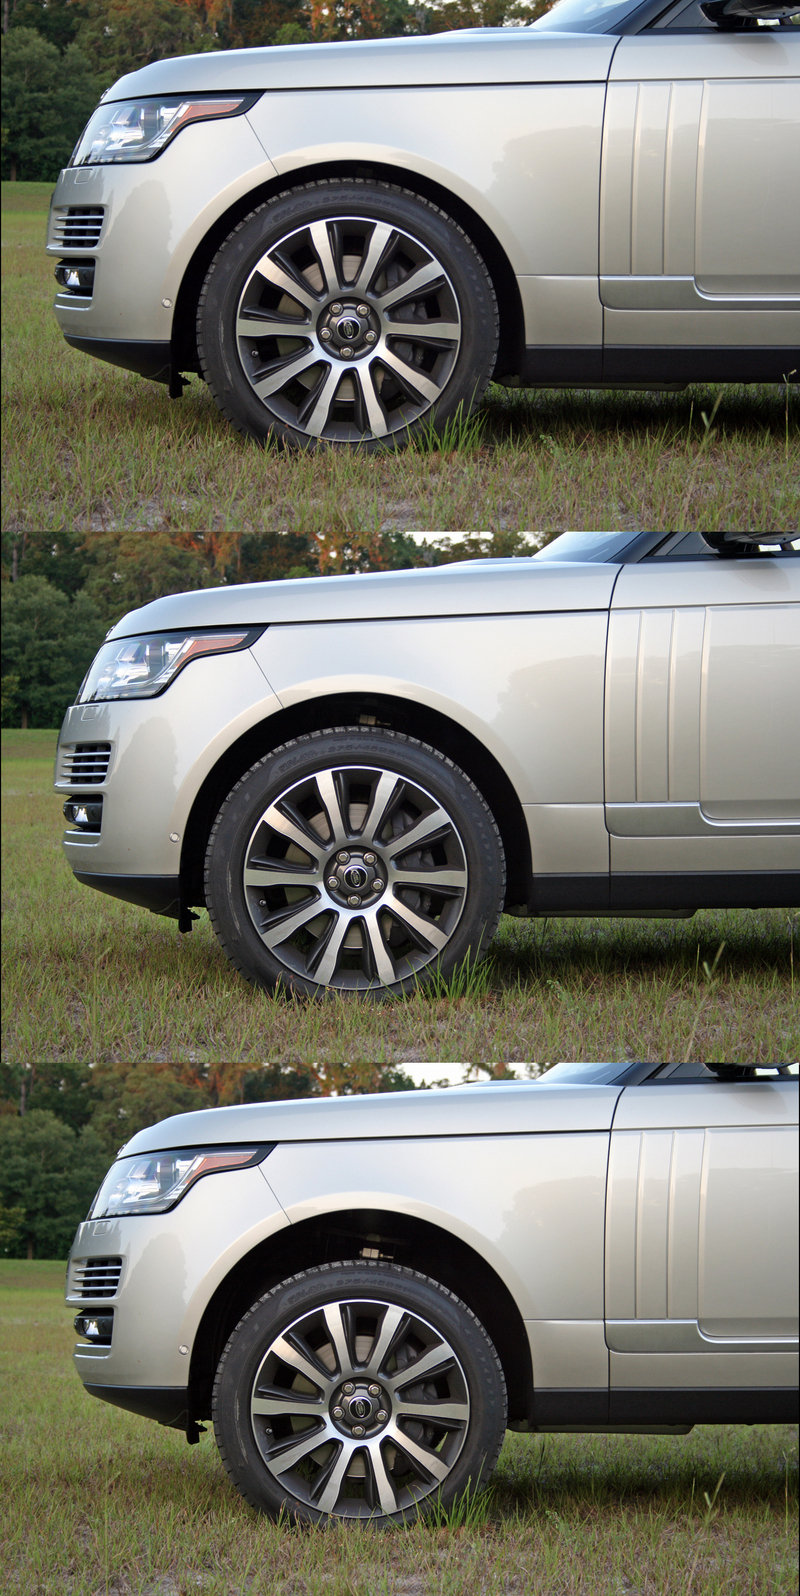 2014 Range Rover Autobiography - Driven Exterior - image 556045